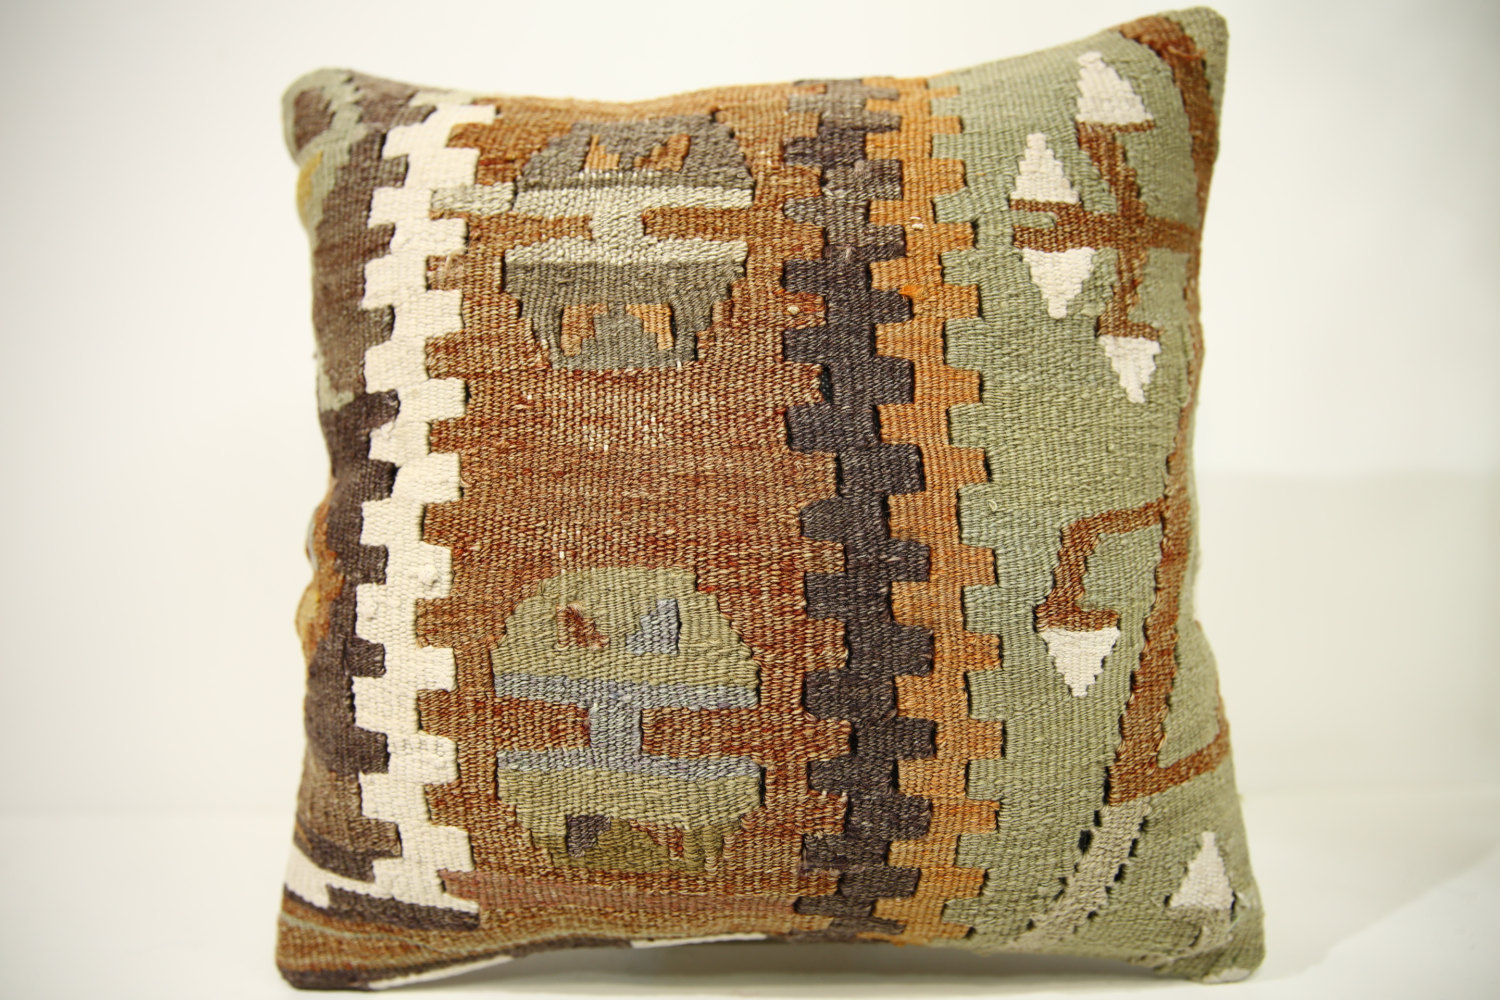 Kilim Pillows | 14x14 | Kelim pillows | 1409 | Turkish pillows , Kilim cushion